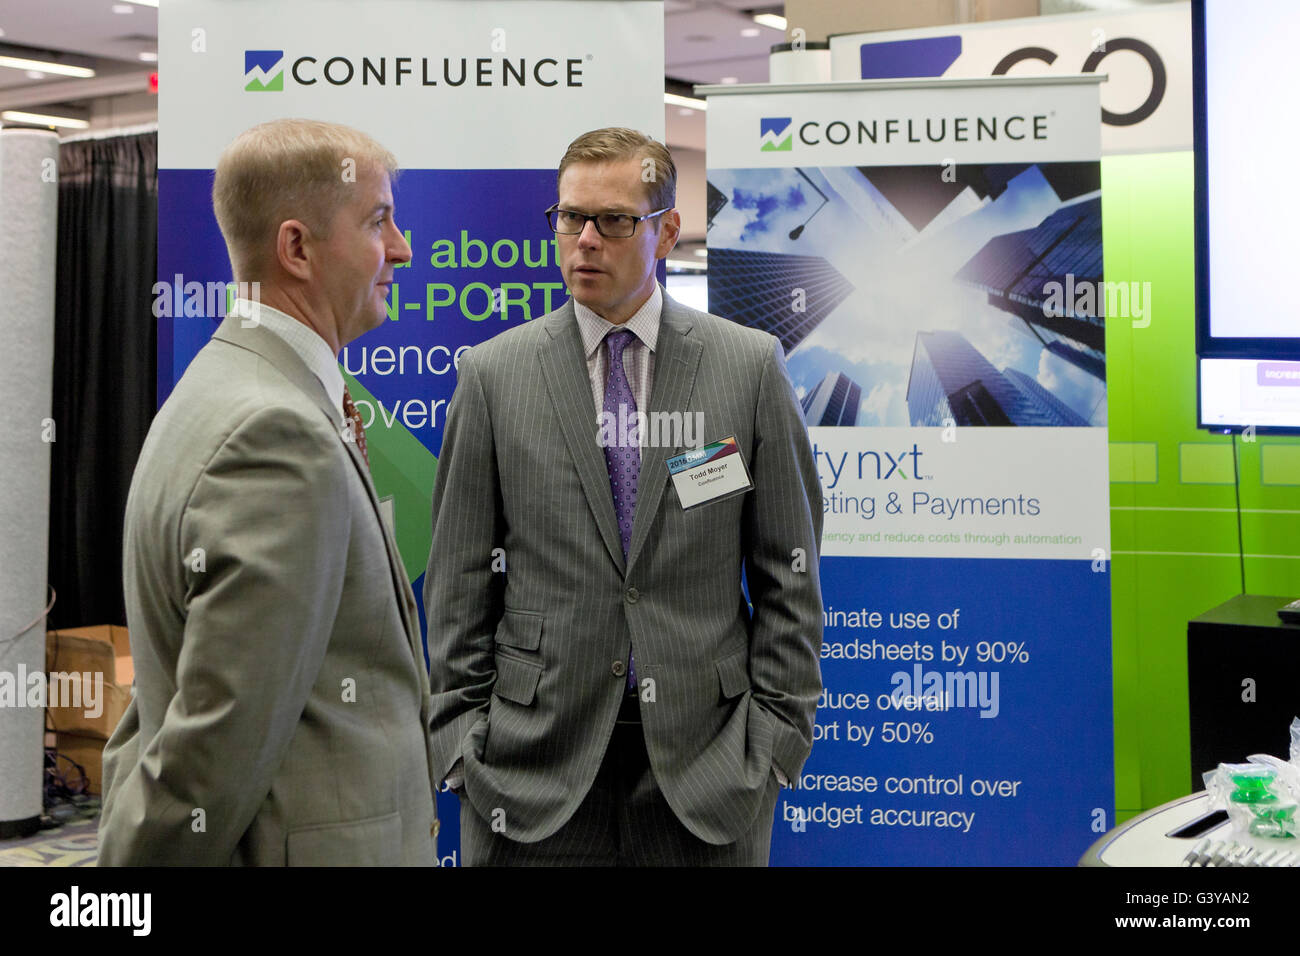 Representatives of Confluence Technologies await clients at a business expo - USA - Stock Image